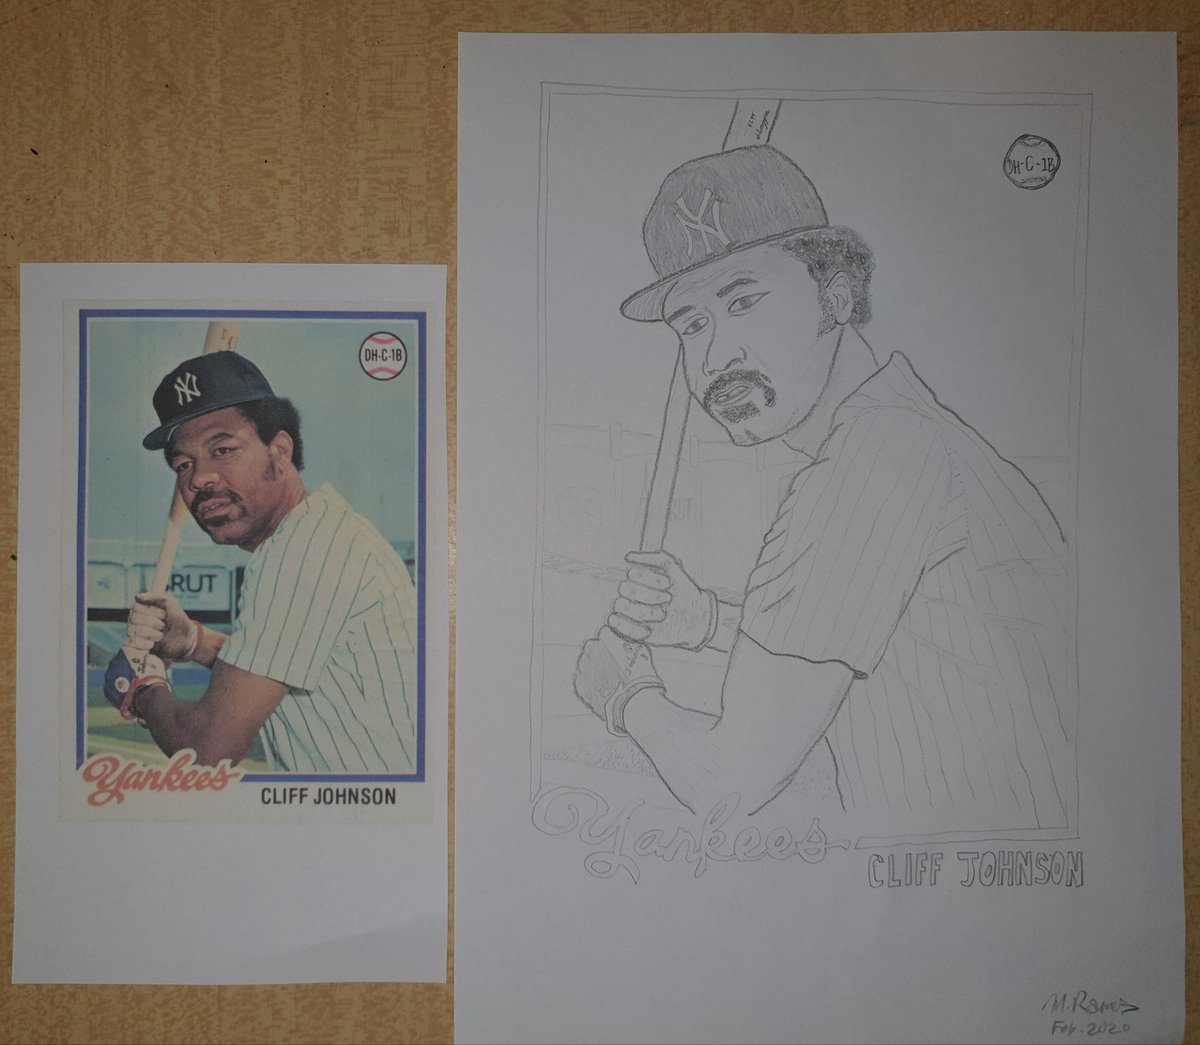 For today's drawing, I decided to pencil sketch native Texan and former #Yankees' utility player Cliff Johnson, best known for providing power in the batter's box and scrappin' in the locker room.#NYY #BronxBomberspic.twitter.com/Jf5OTH1j8G